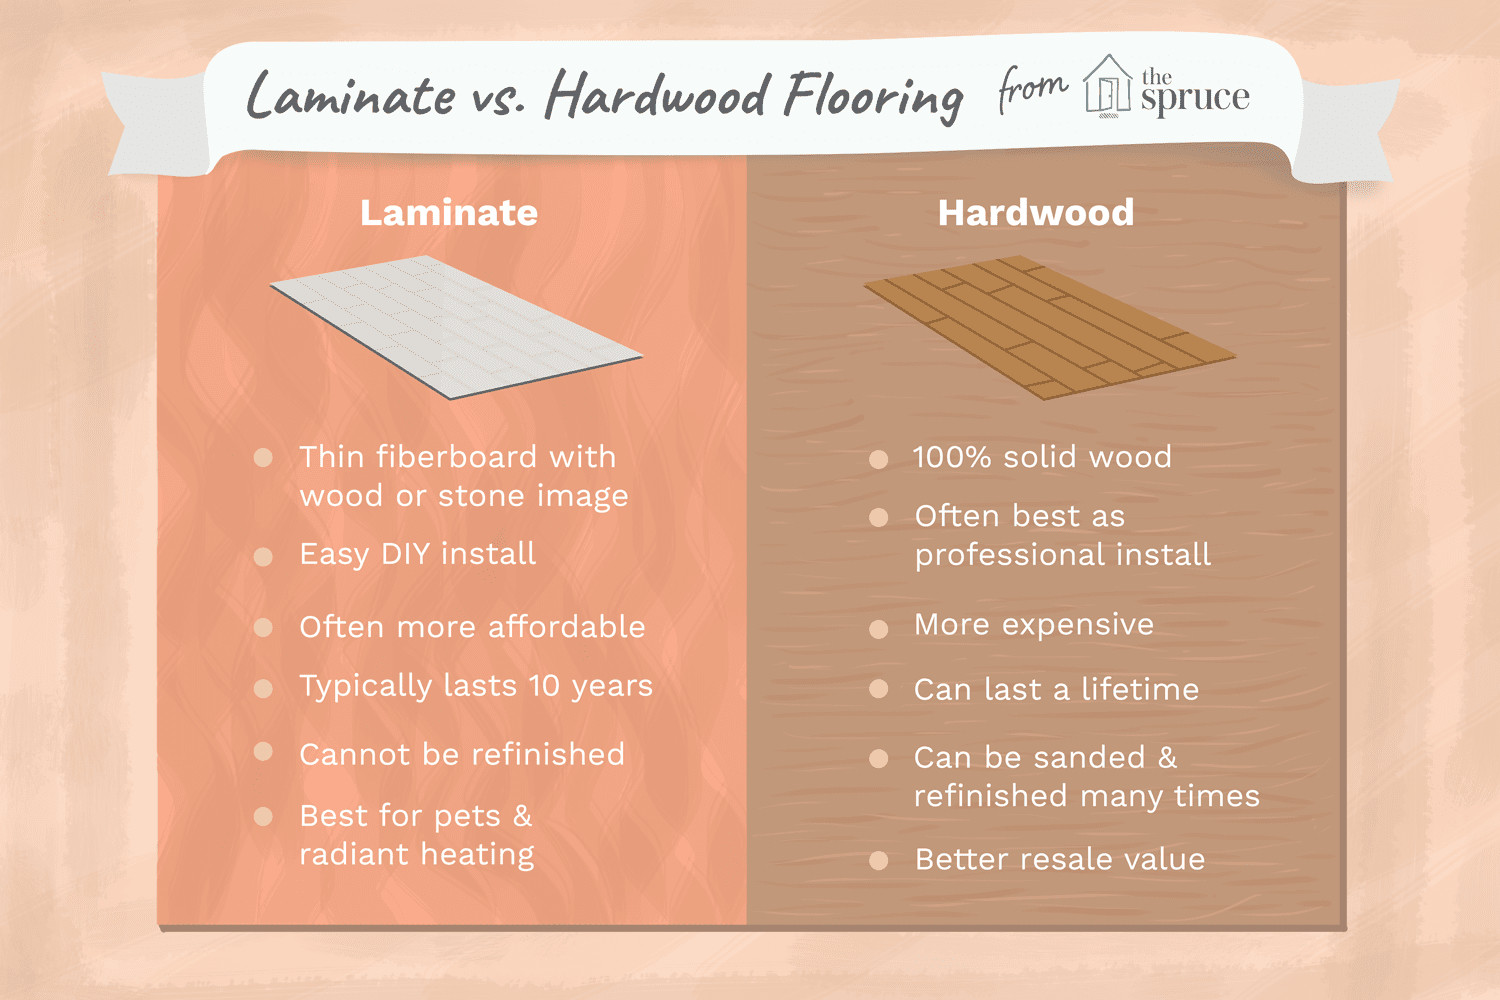 hardwood flooring quality reviews of laminate vs hardwood doesnt have to be a hard decision regarding hardwood doesnt have to be a hard decision